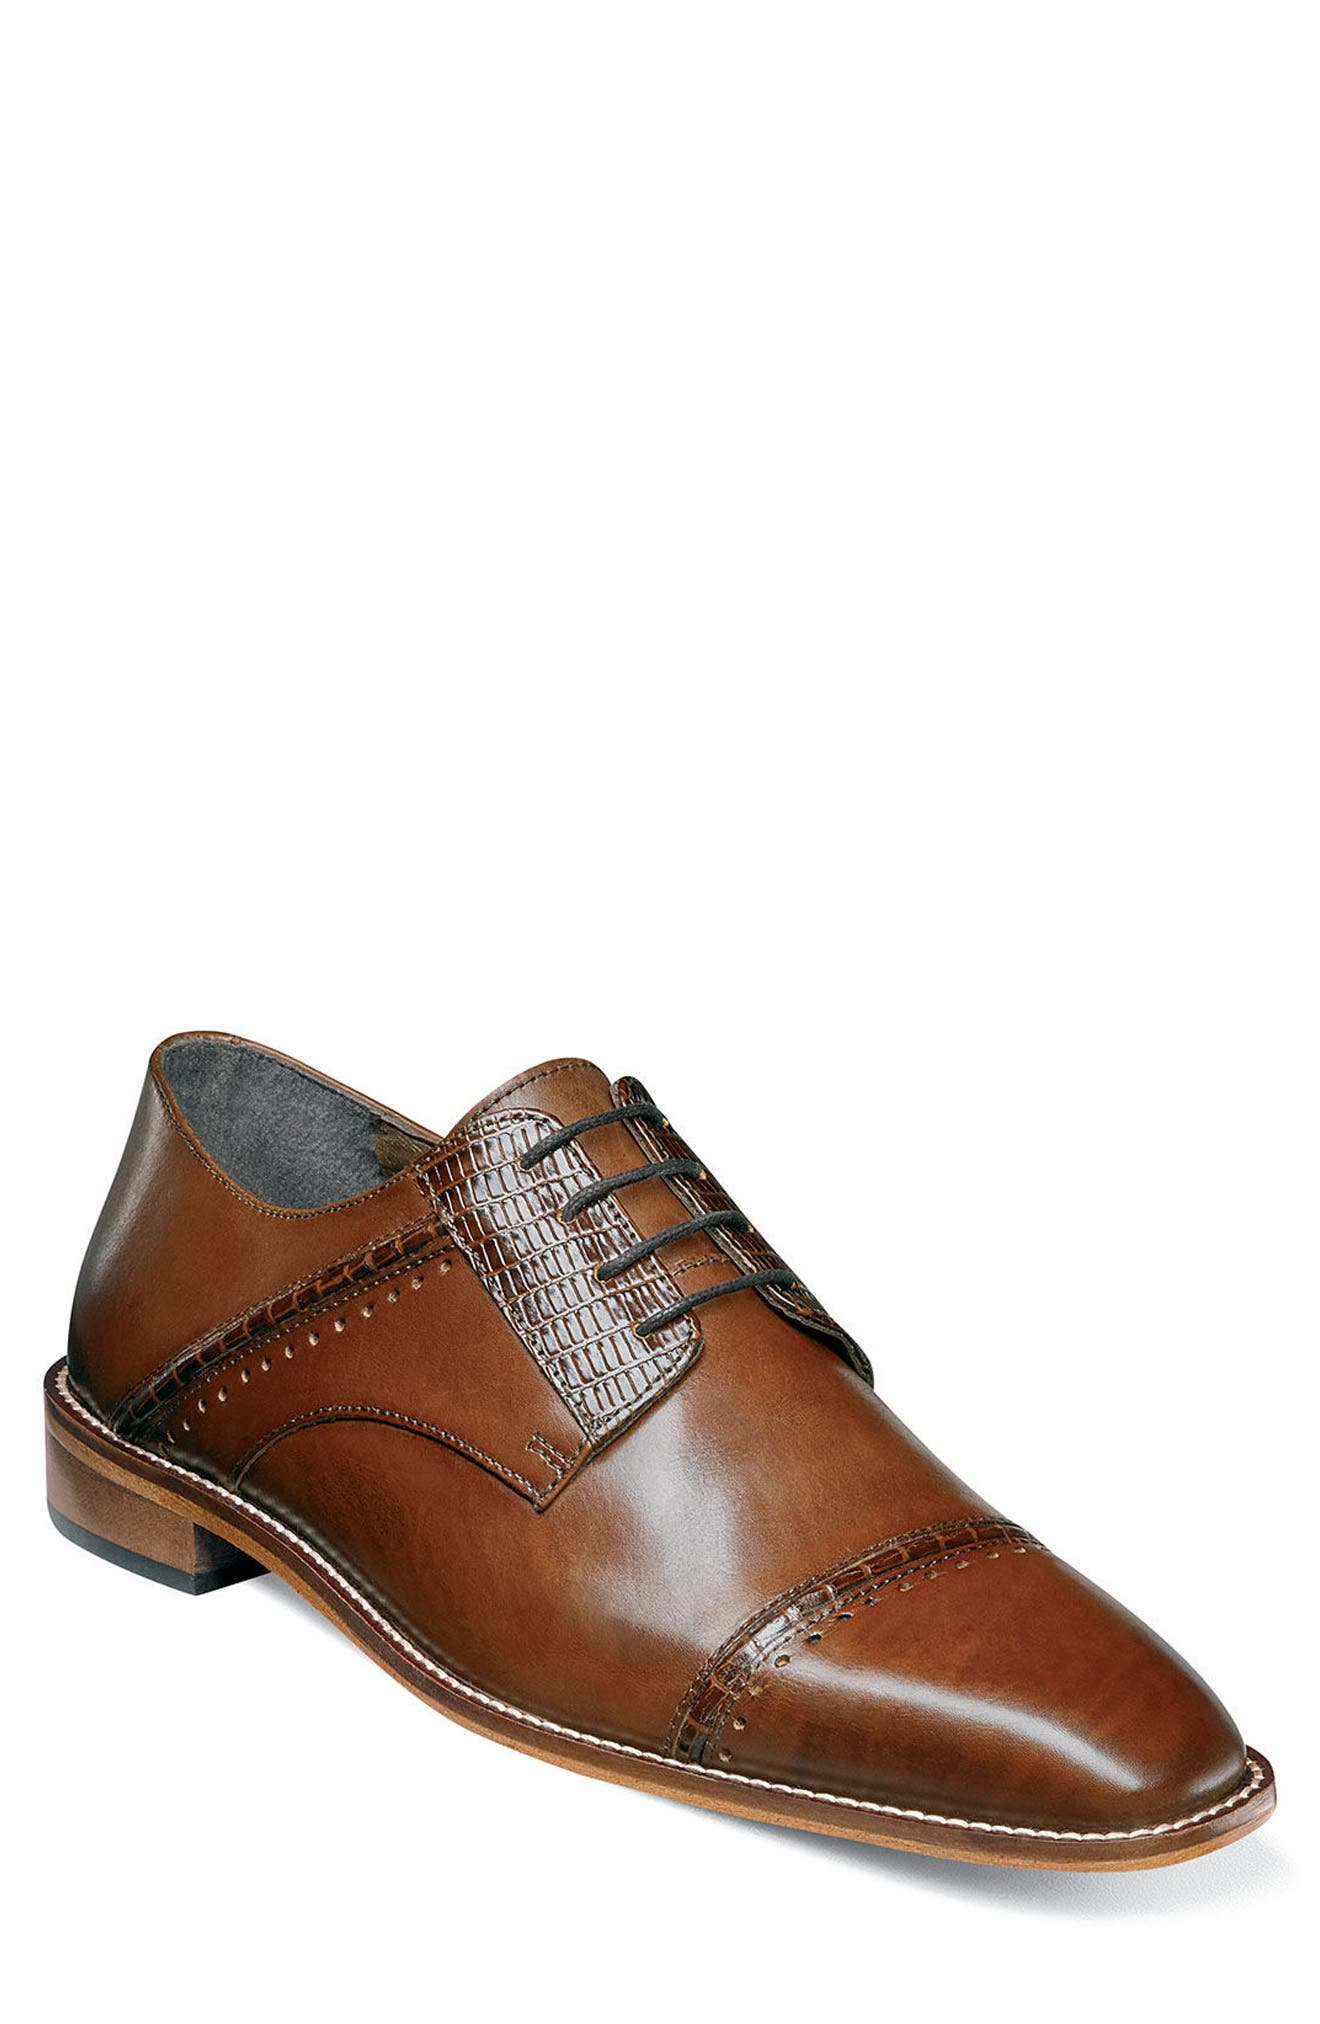 Alternate Image 1 Selected - Stacy Adams Ryland Cap Toe Derby (Men)